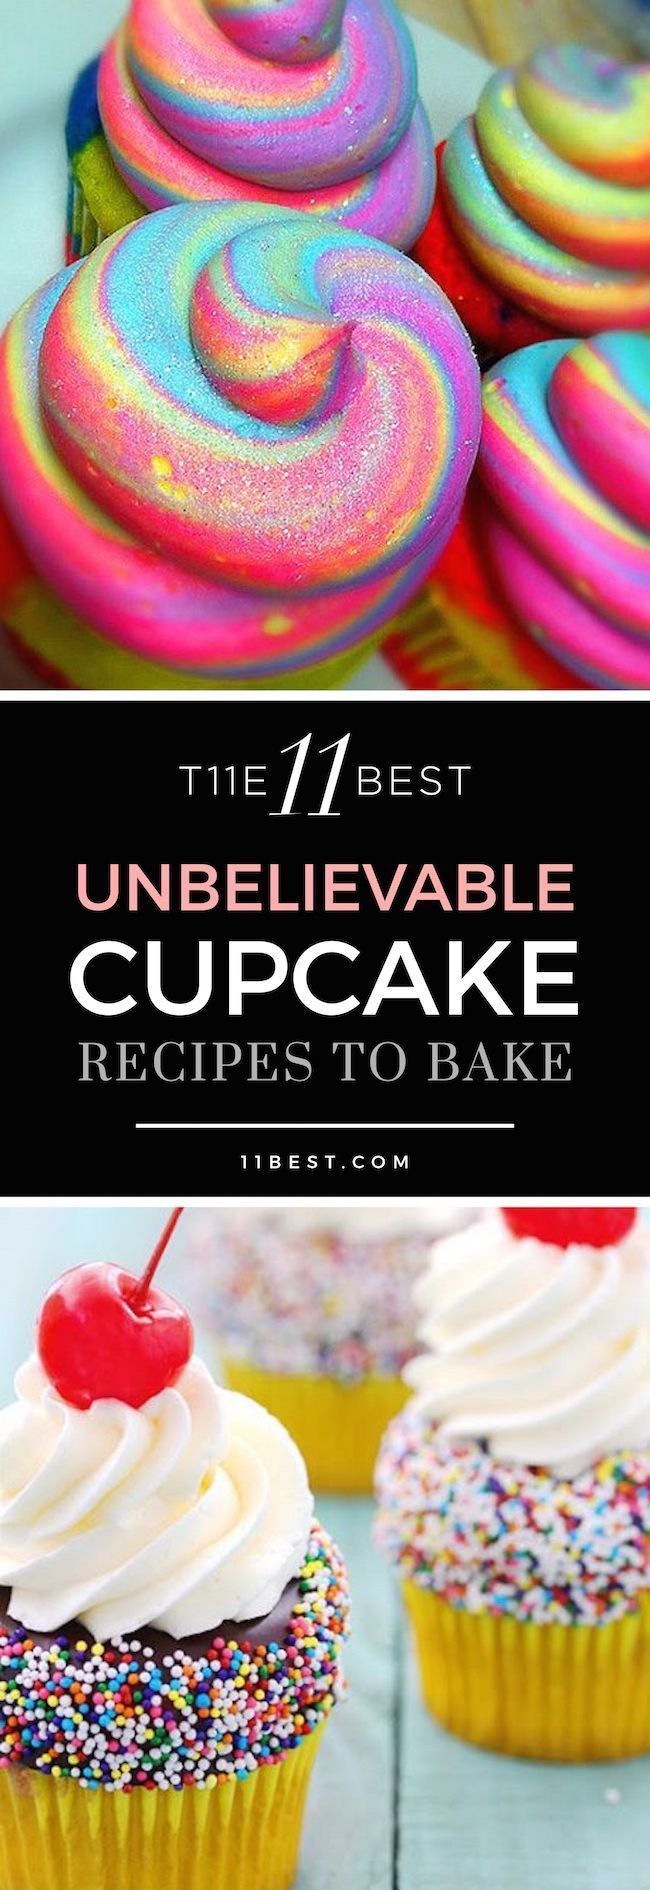 The 11 best cupcake recipes!. Please also visit www.JustForYouPropheticArt.com for colorful, inspirational art and stories. Thank you so much!